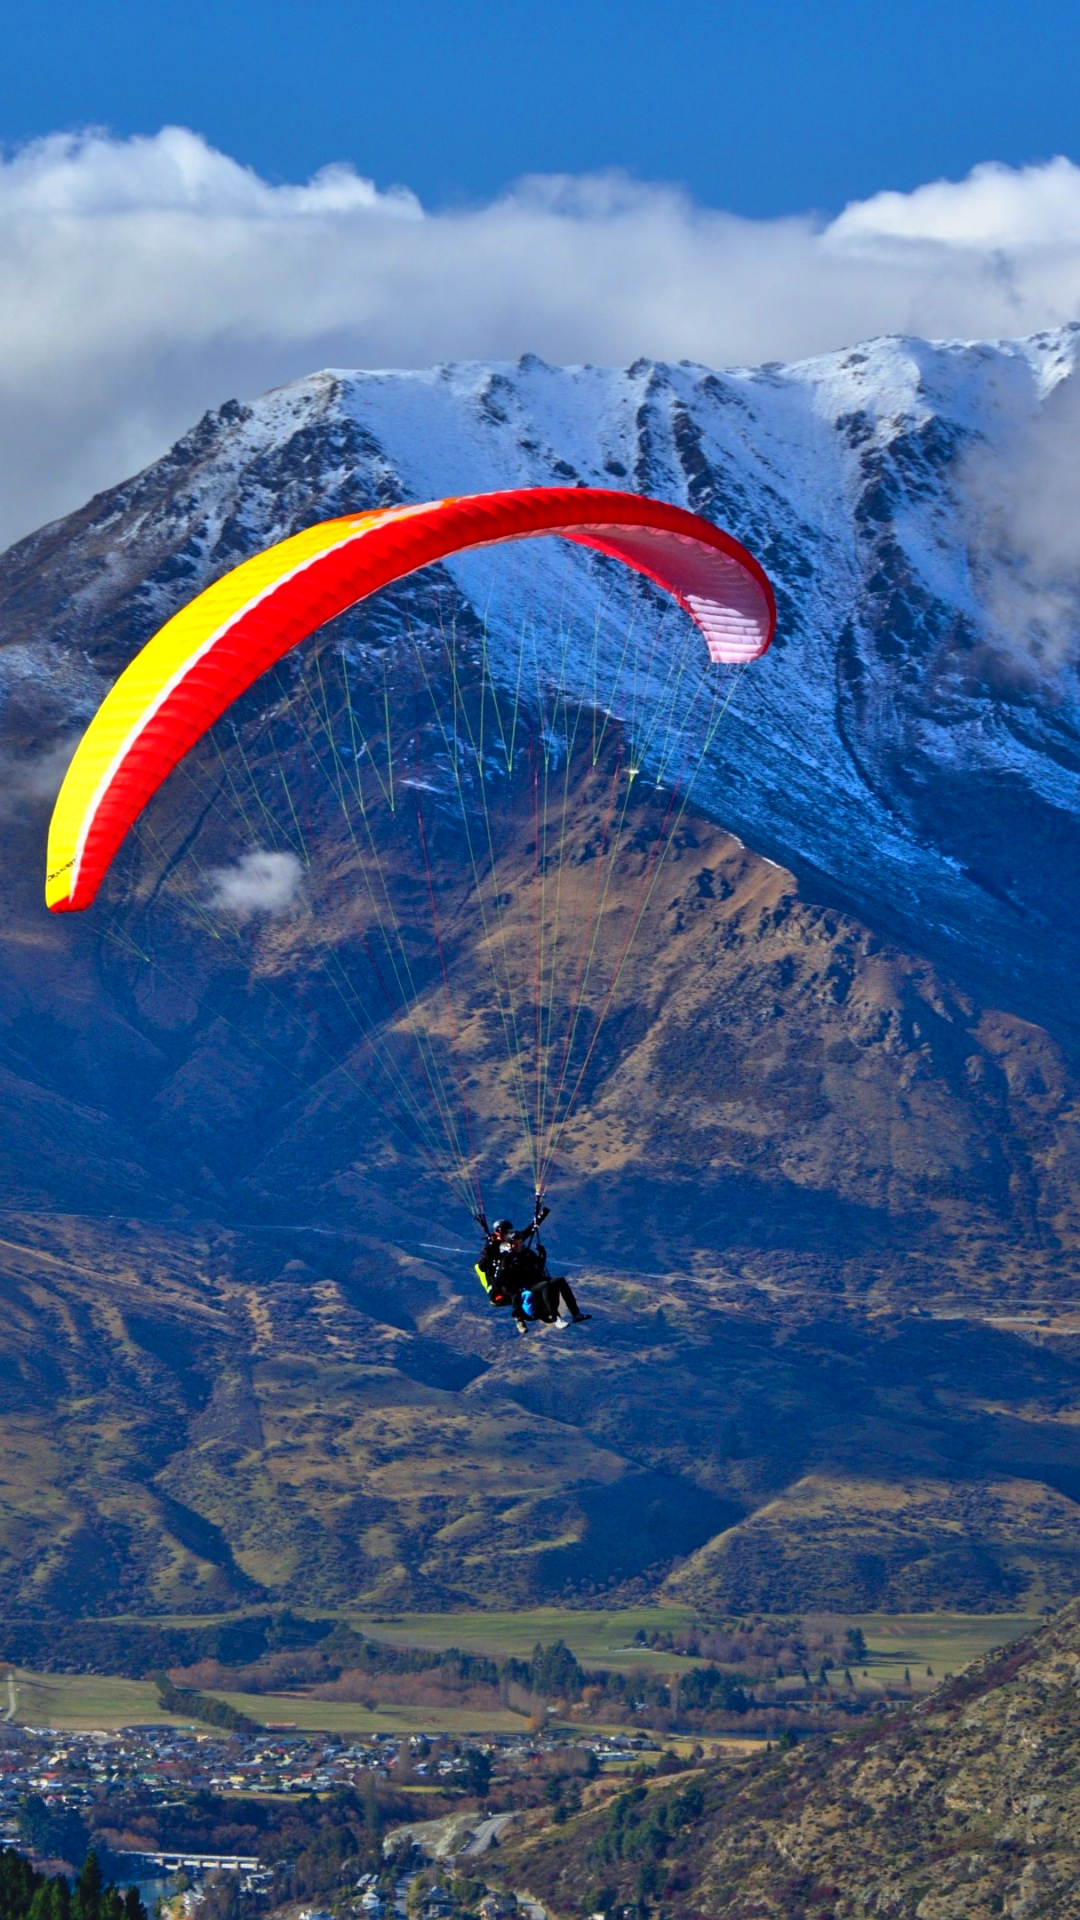 sports/paragliding (1080x1920) wallpaper id: 623094 - mobile abyss